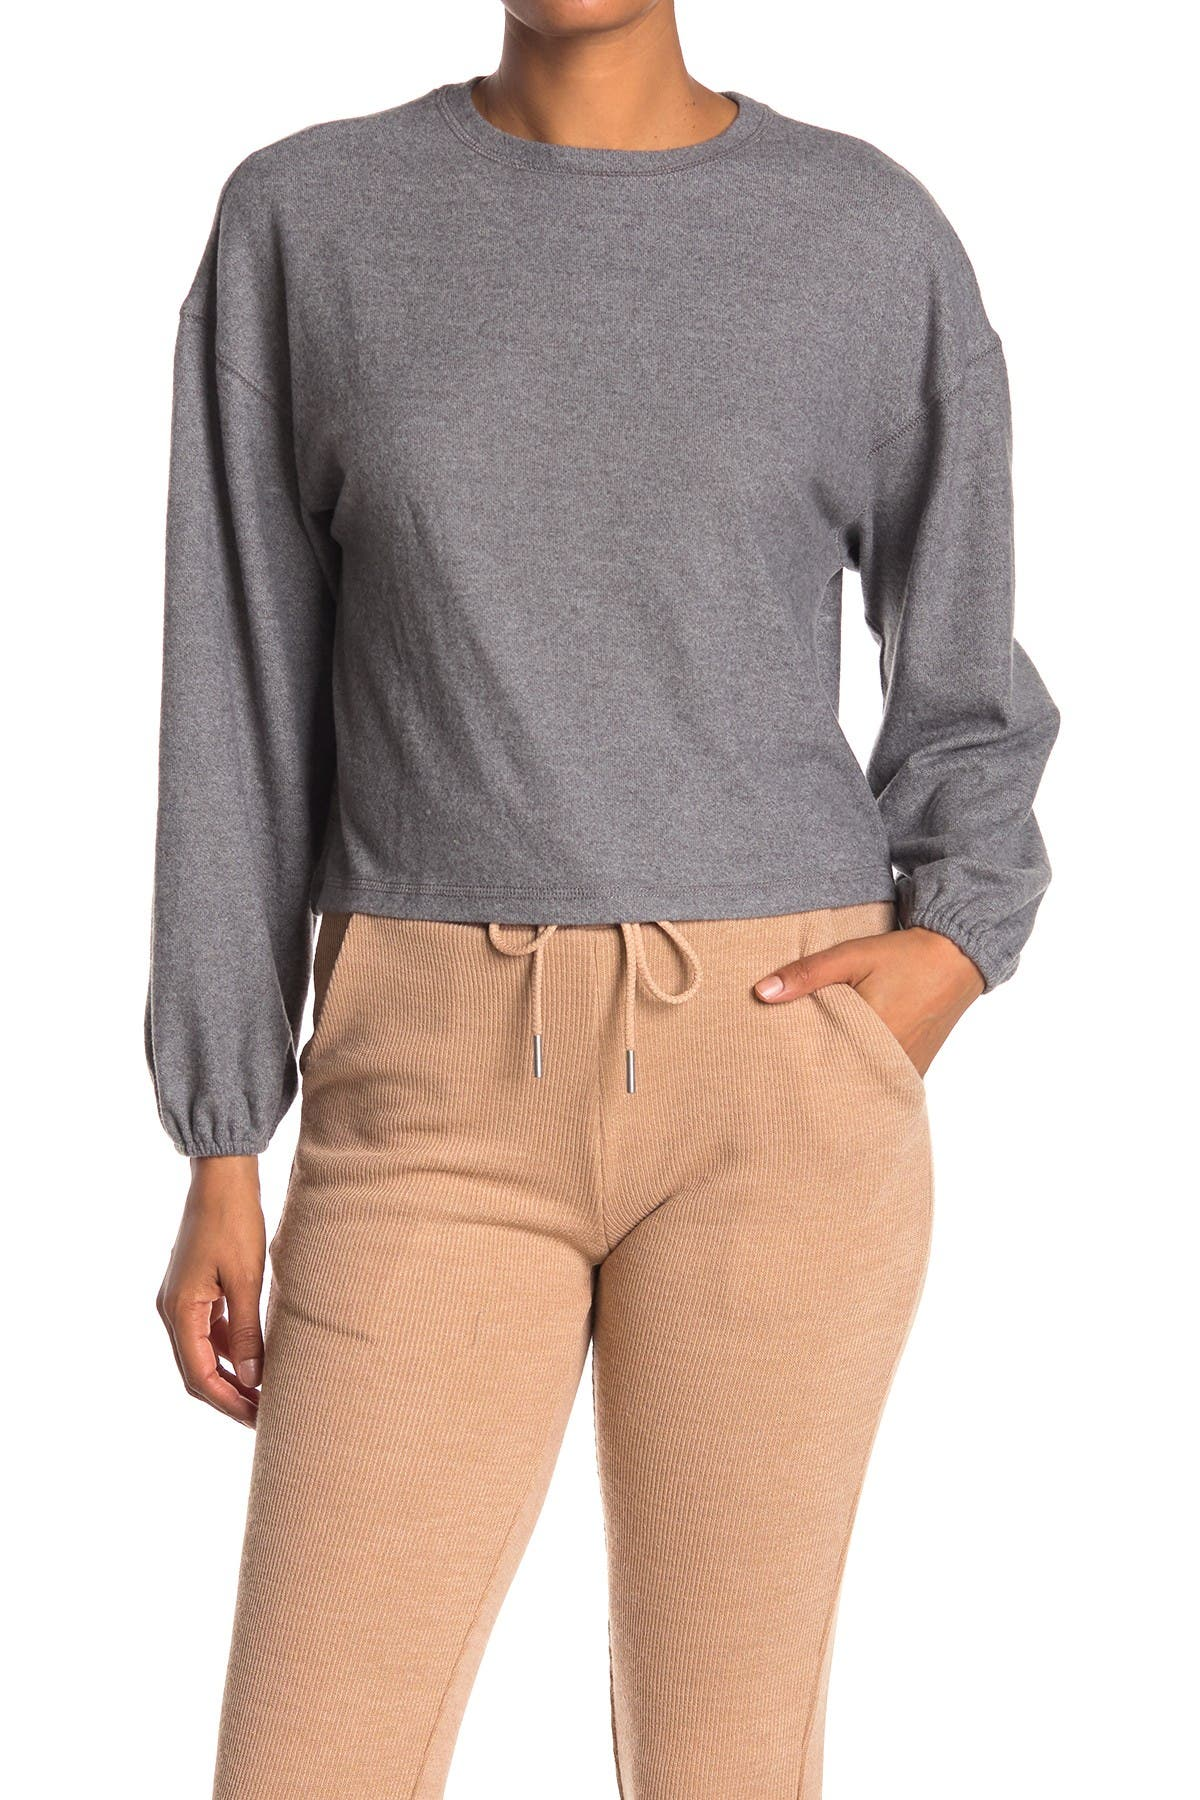 Image of Elodie Brushed Knit Long Sleeve Top